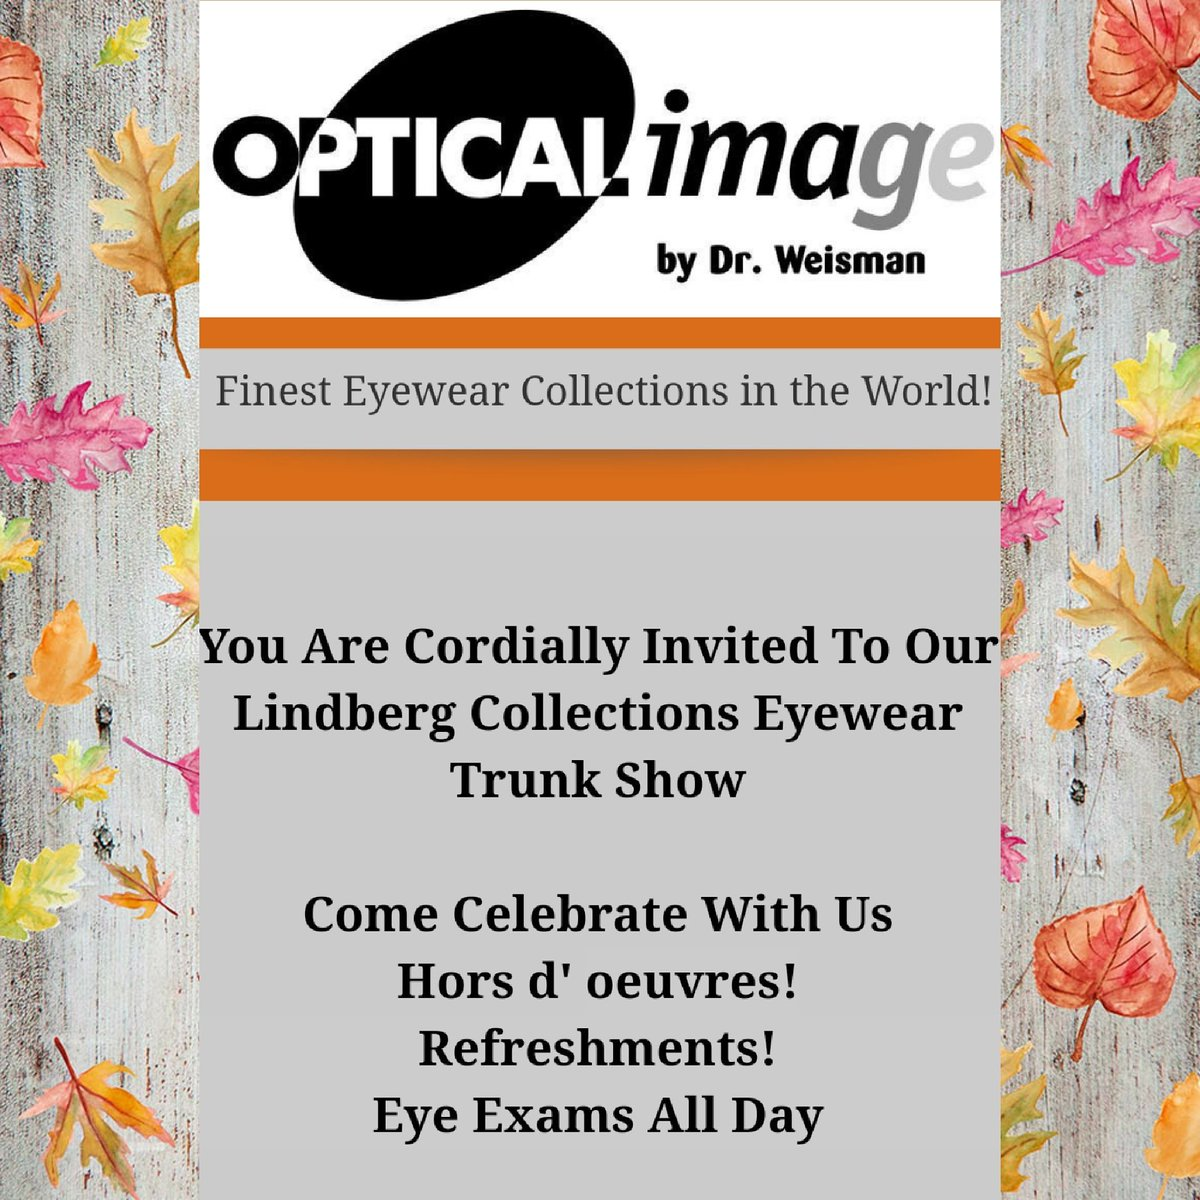 Open your eyes and ears and prepare for our #Lindberg trunk show!  #tucson #eyeexams #eyewear #fashionl #trunkshow<br>http://pic.twitter.com/MPppnSs3NC